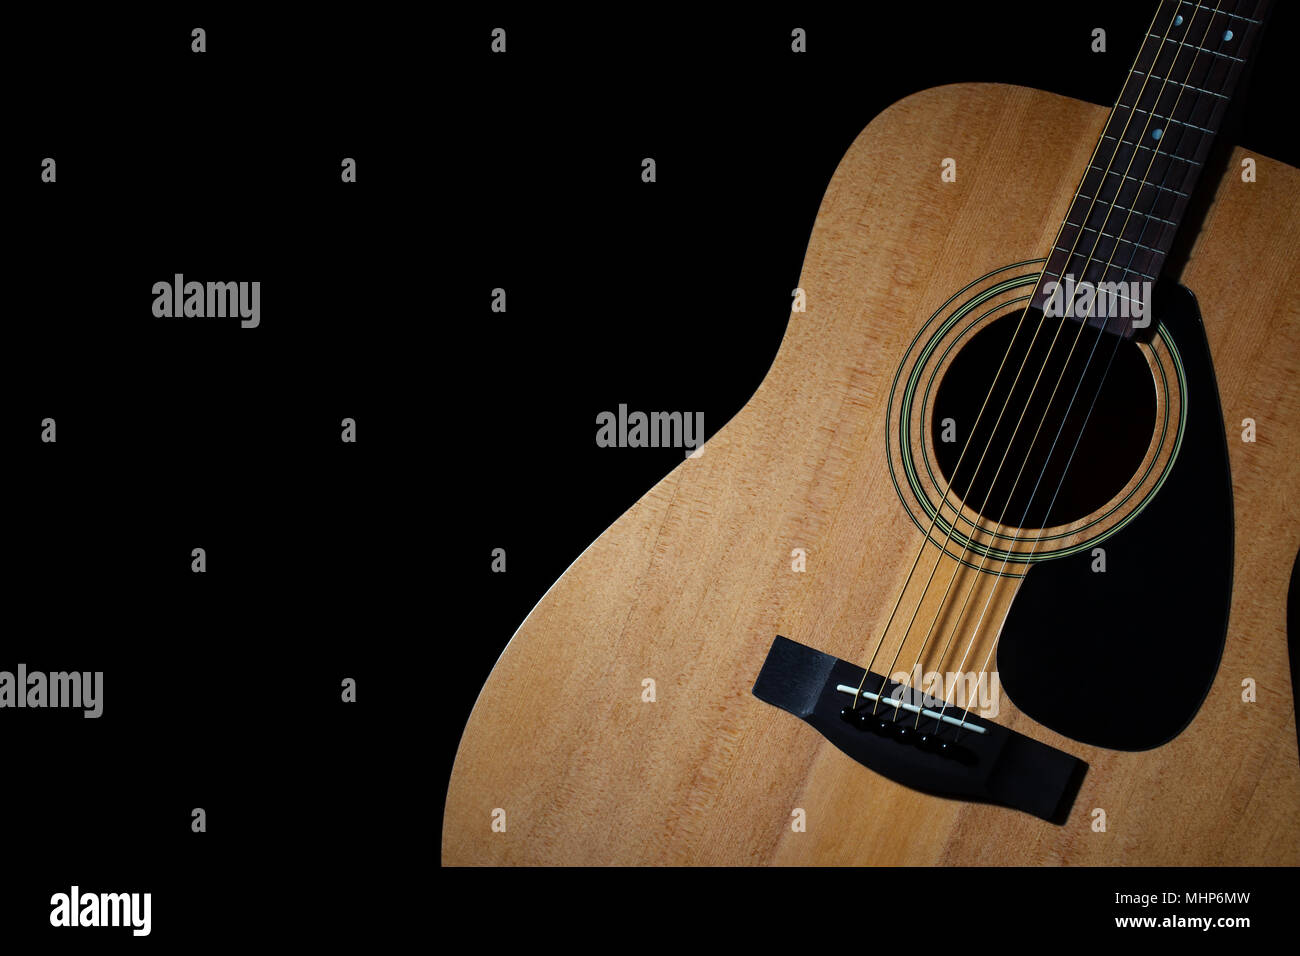 Modern Acoustic Guitar On Black Background Stock Photo 183041065